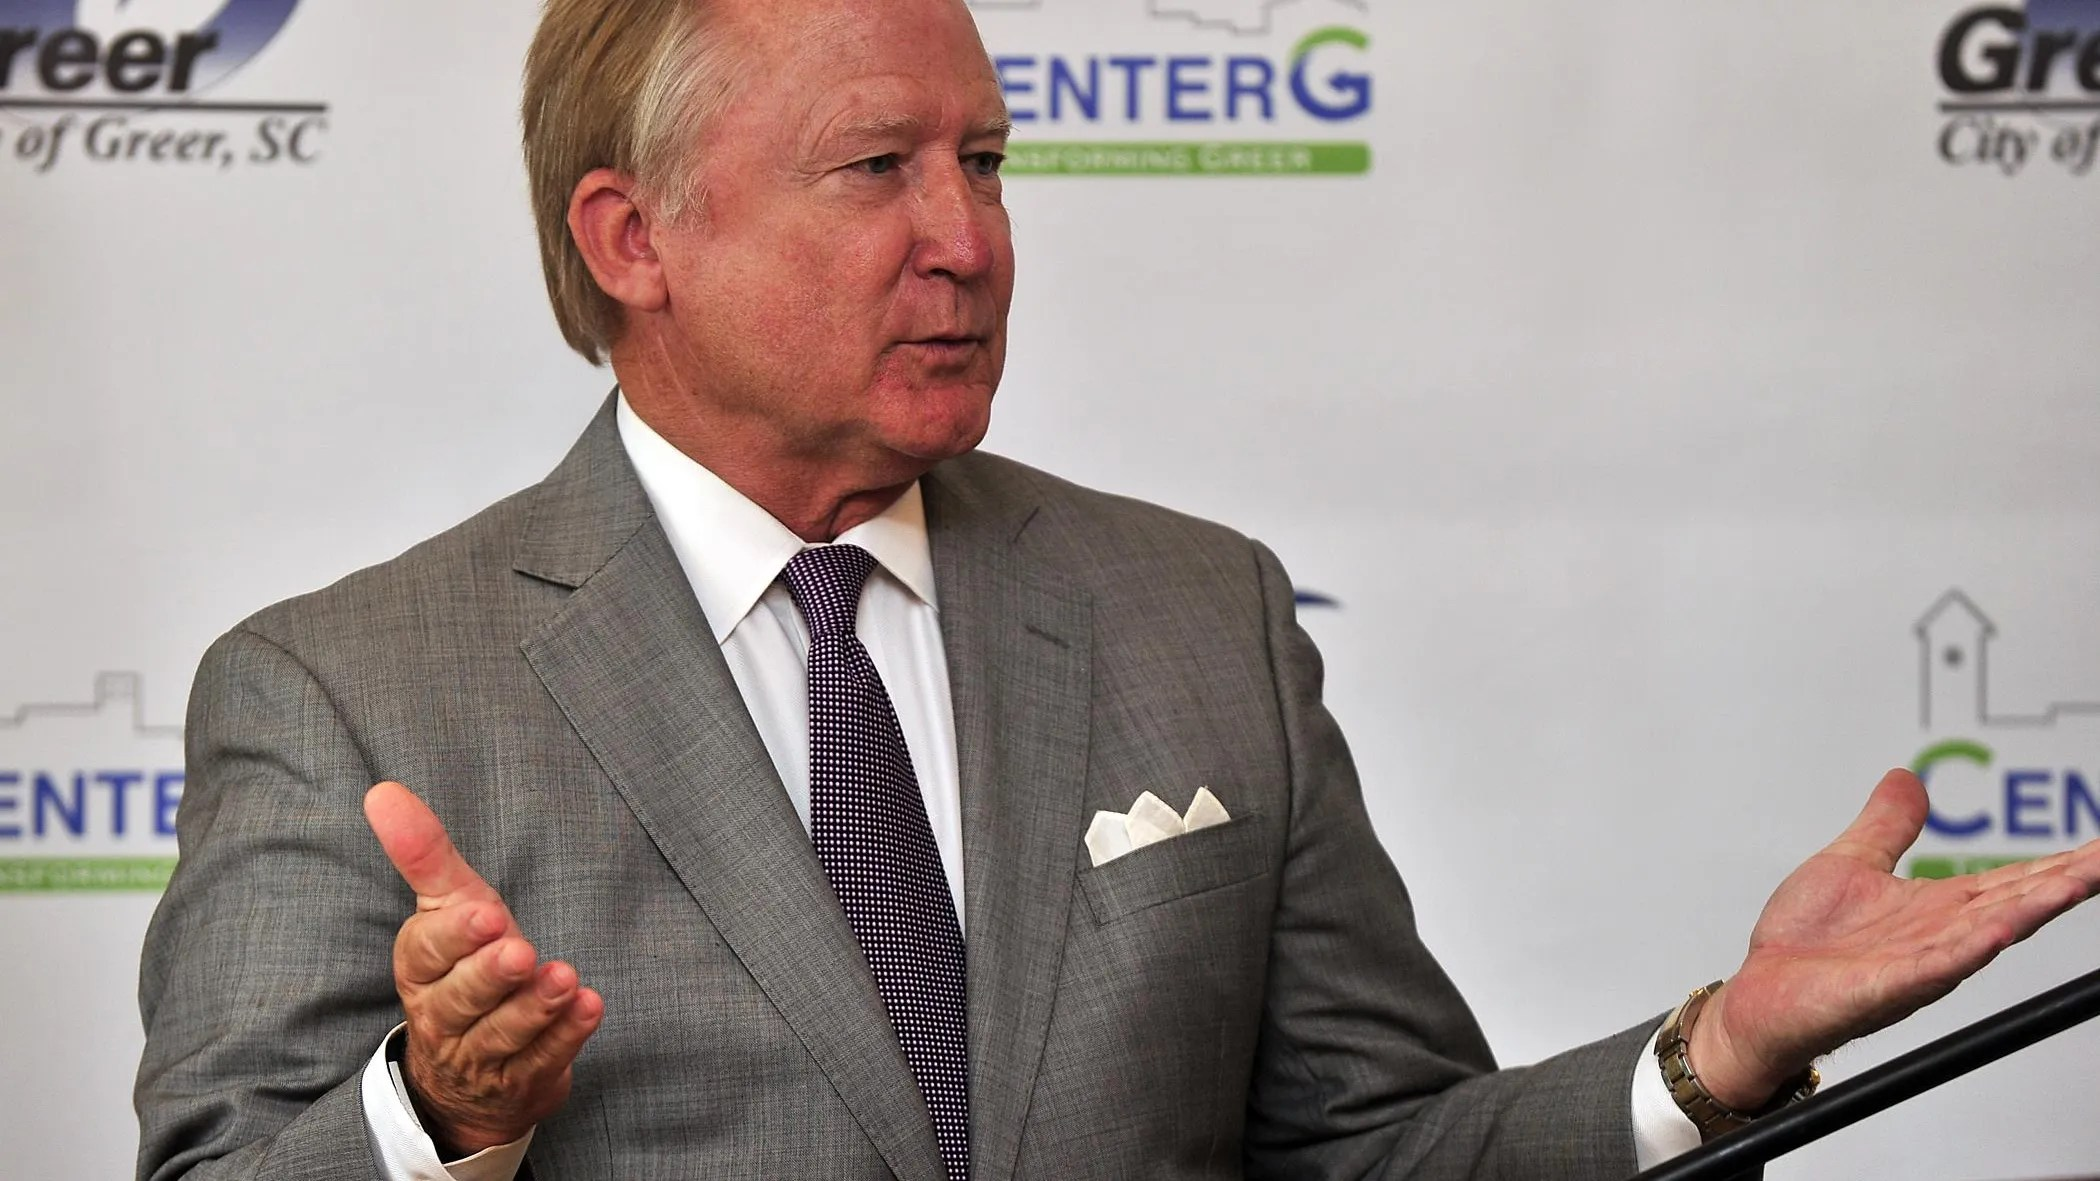 greer high graduate to invest 32m in